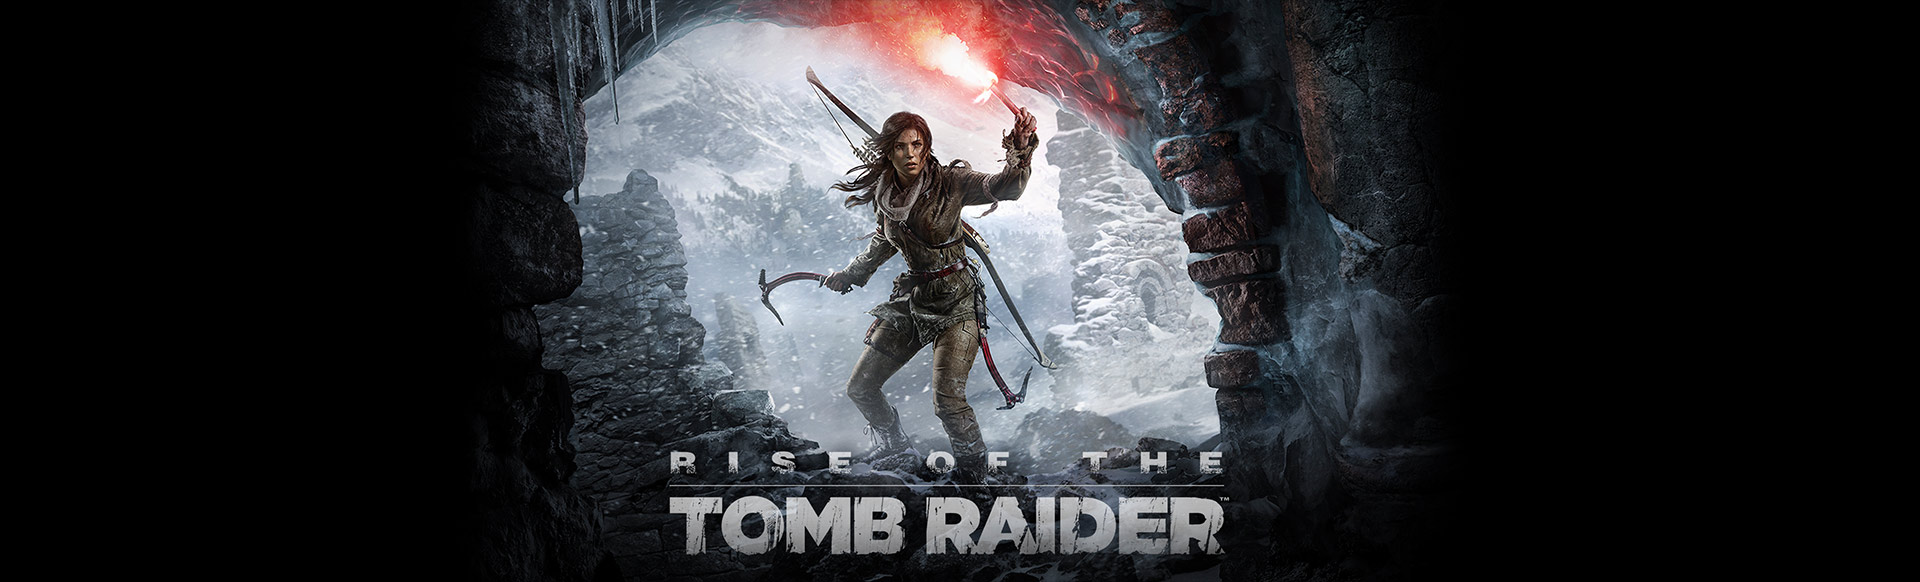 Rise of the Tomb Raider - pre-order